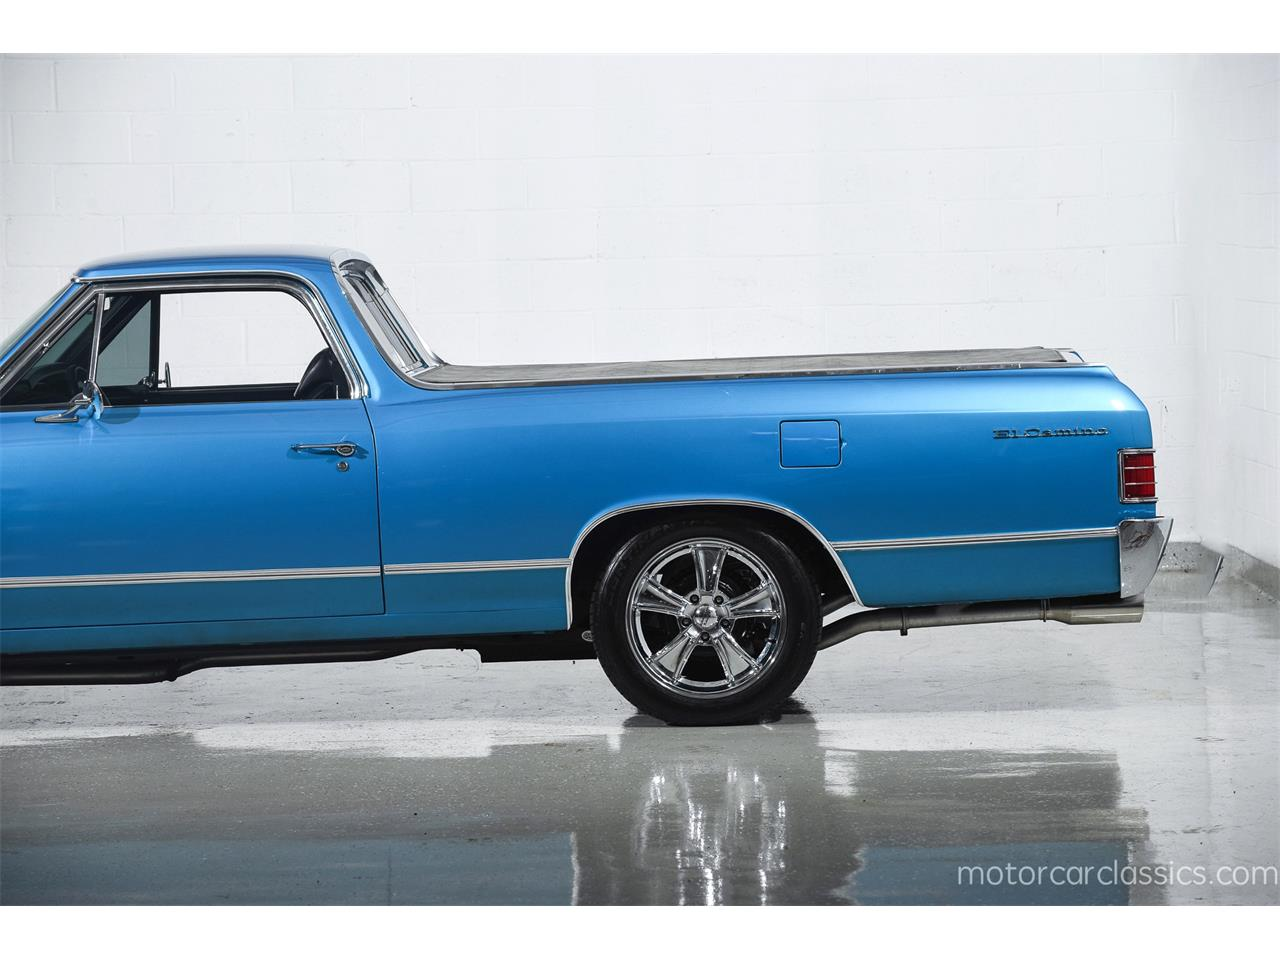 Large Picture of 1967 El Camino located in Farmingdale New York - $42,500.00 - MBON